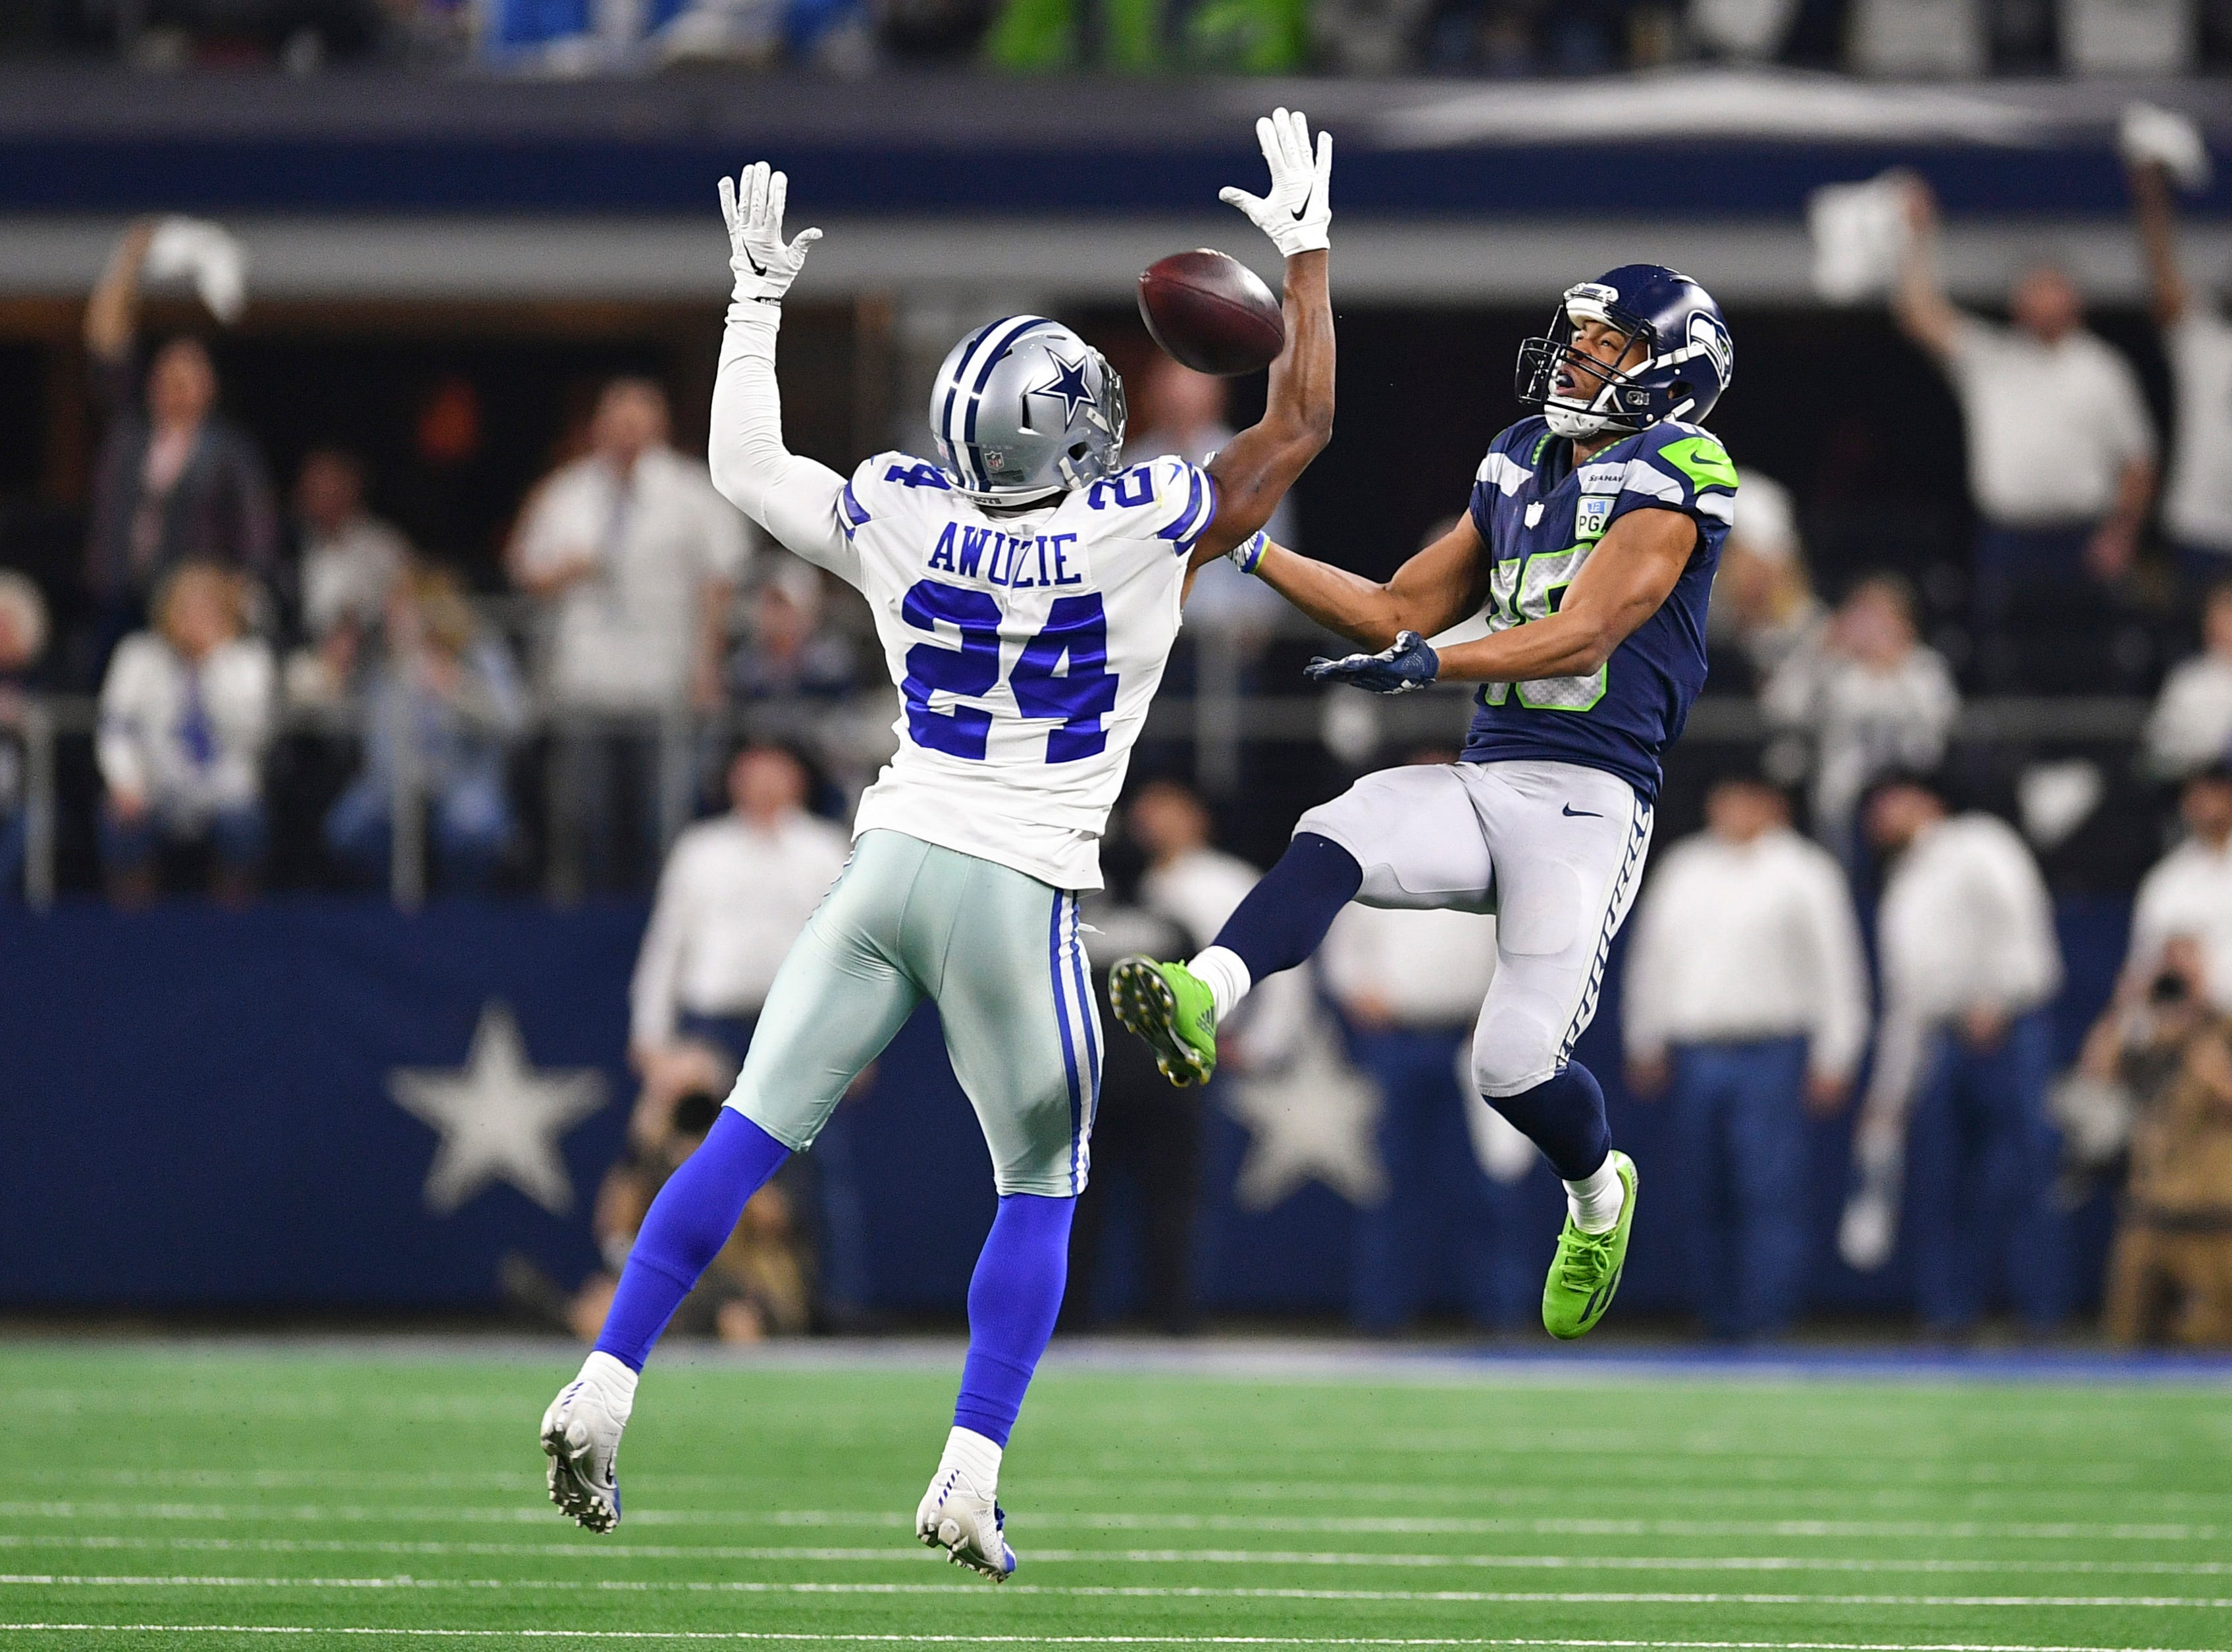 Dallas Cowboys cornerback Chidobe Awuzie (24) breaks up a past intended for Seattle Seahawks wide receiver Tyler Lockett (16) in the second half at AT&T Stadium.